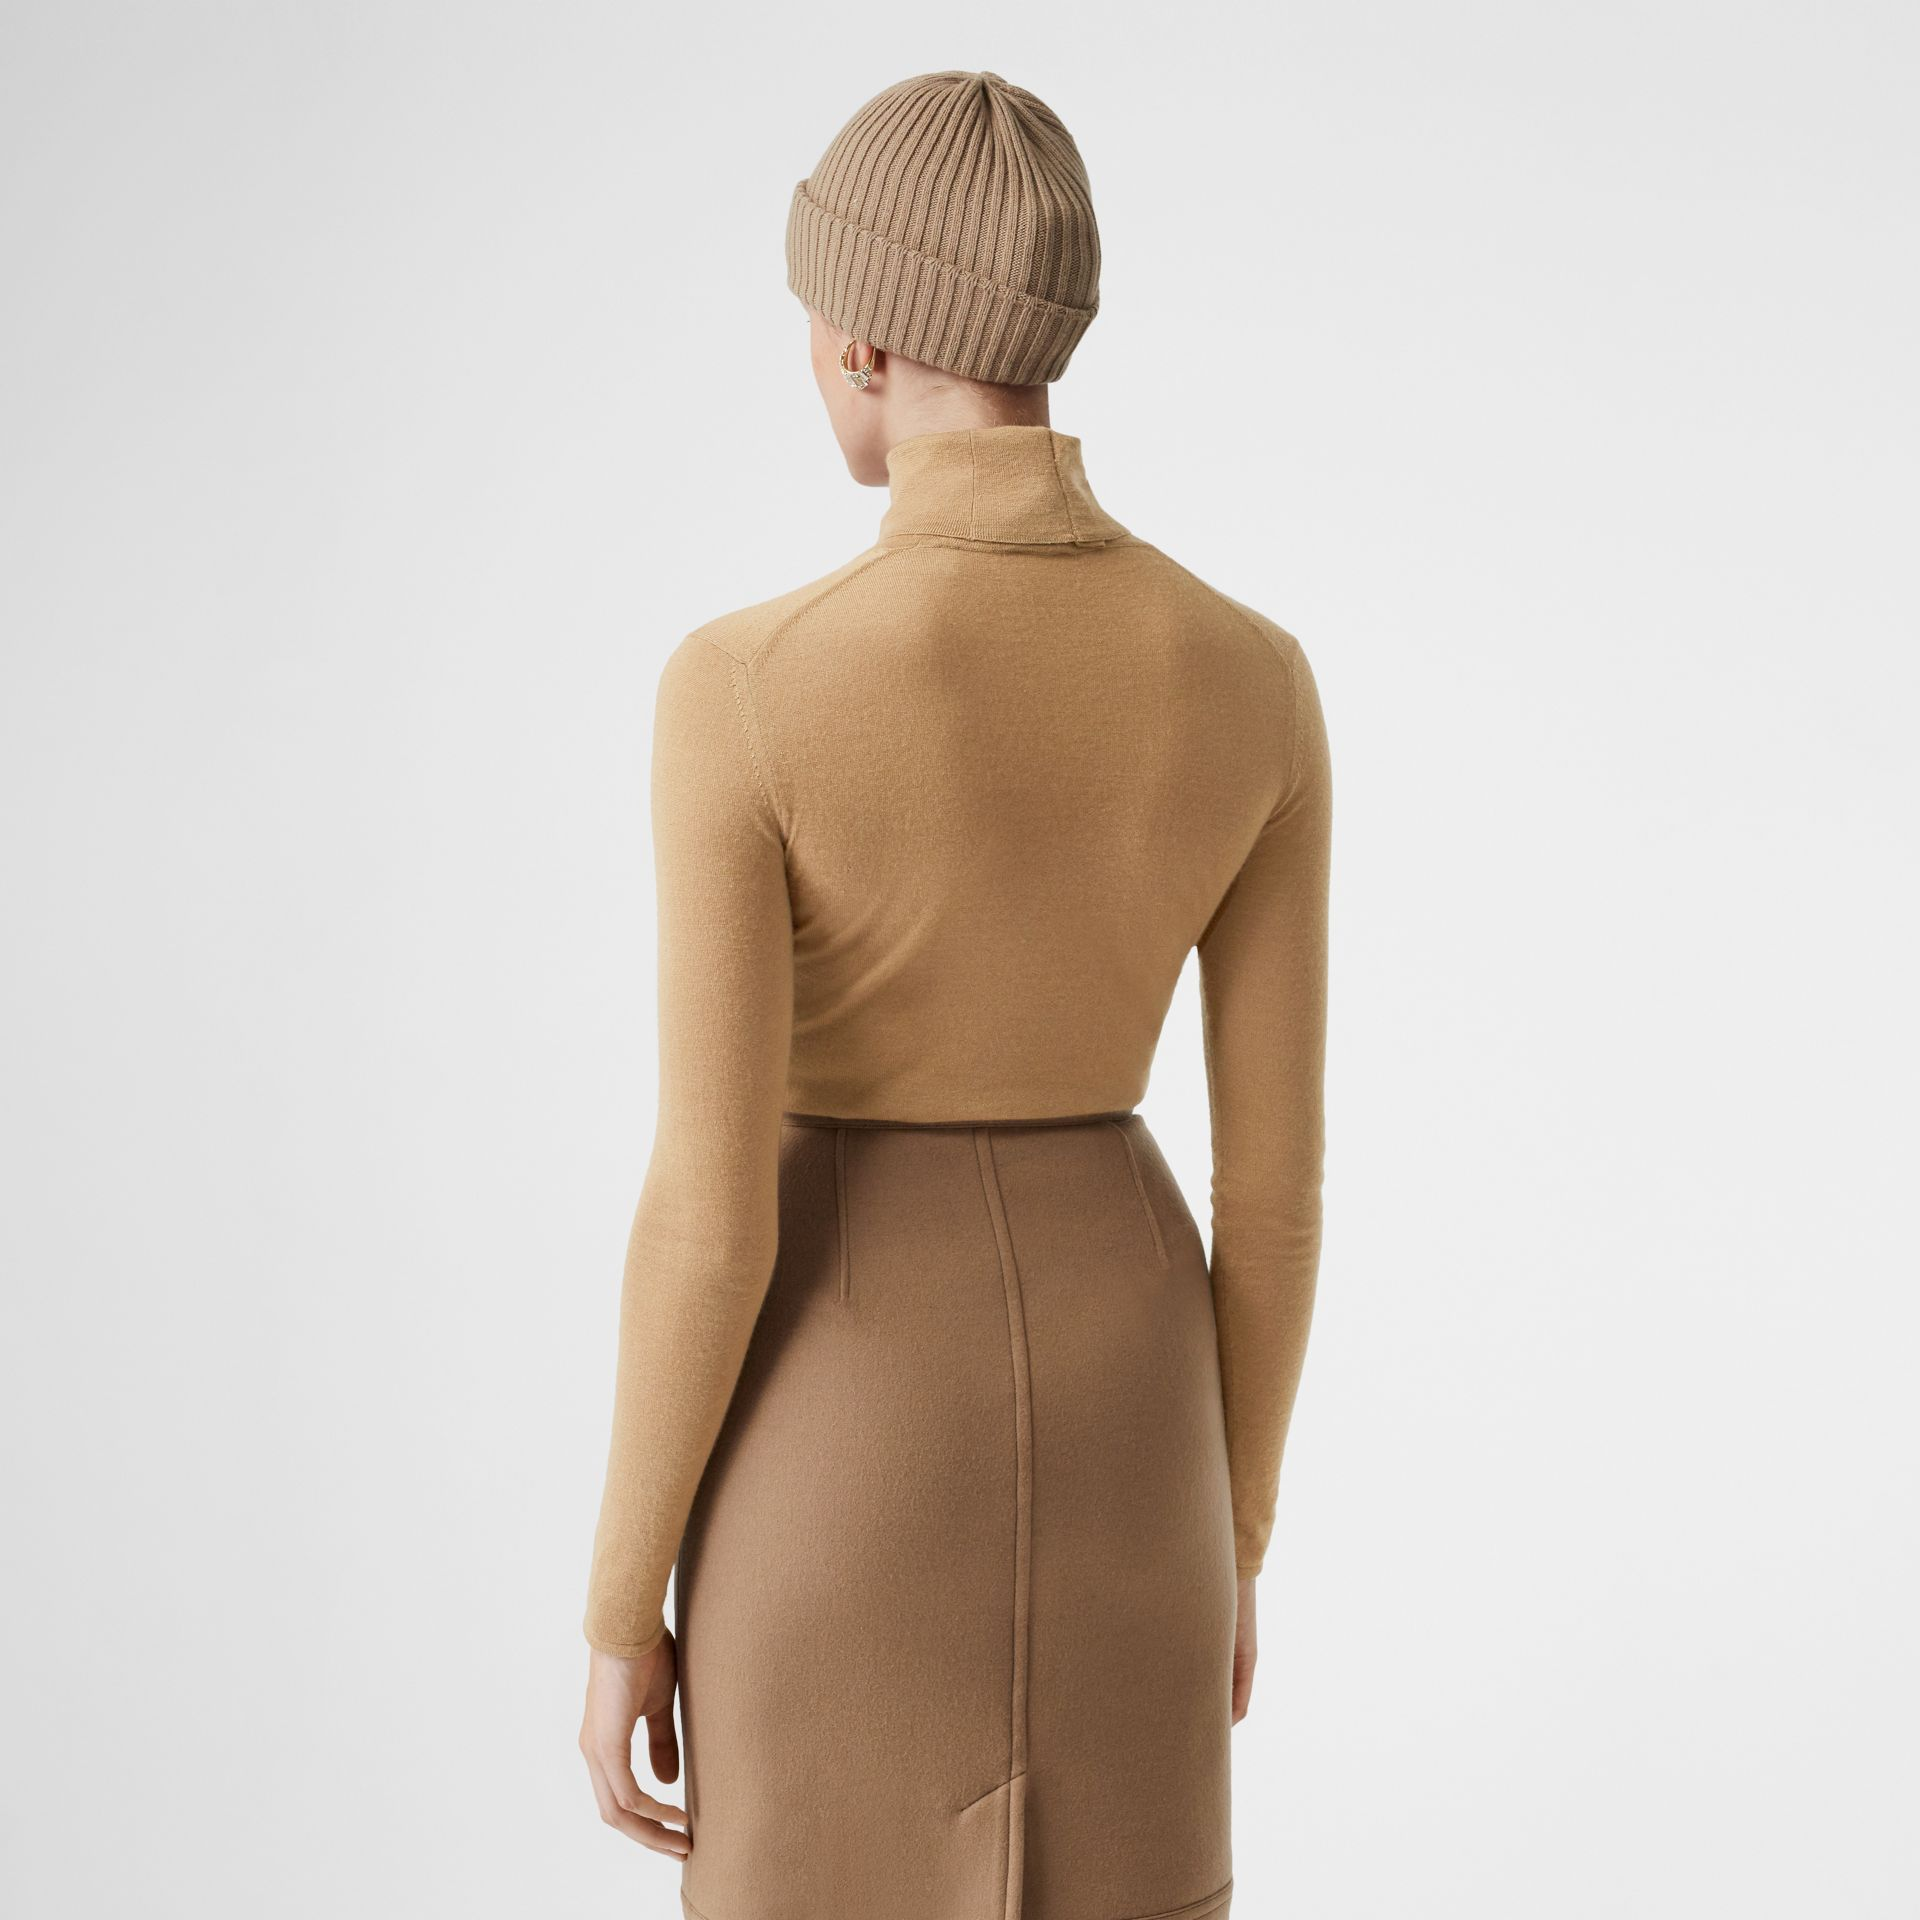 Embroidered Logo Cashmere Silk Roll-neck Sweater in Archive Beige - Women | Burberry Canada - gallery image 2